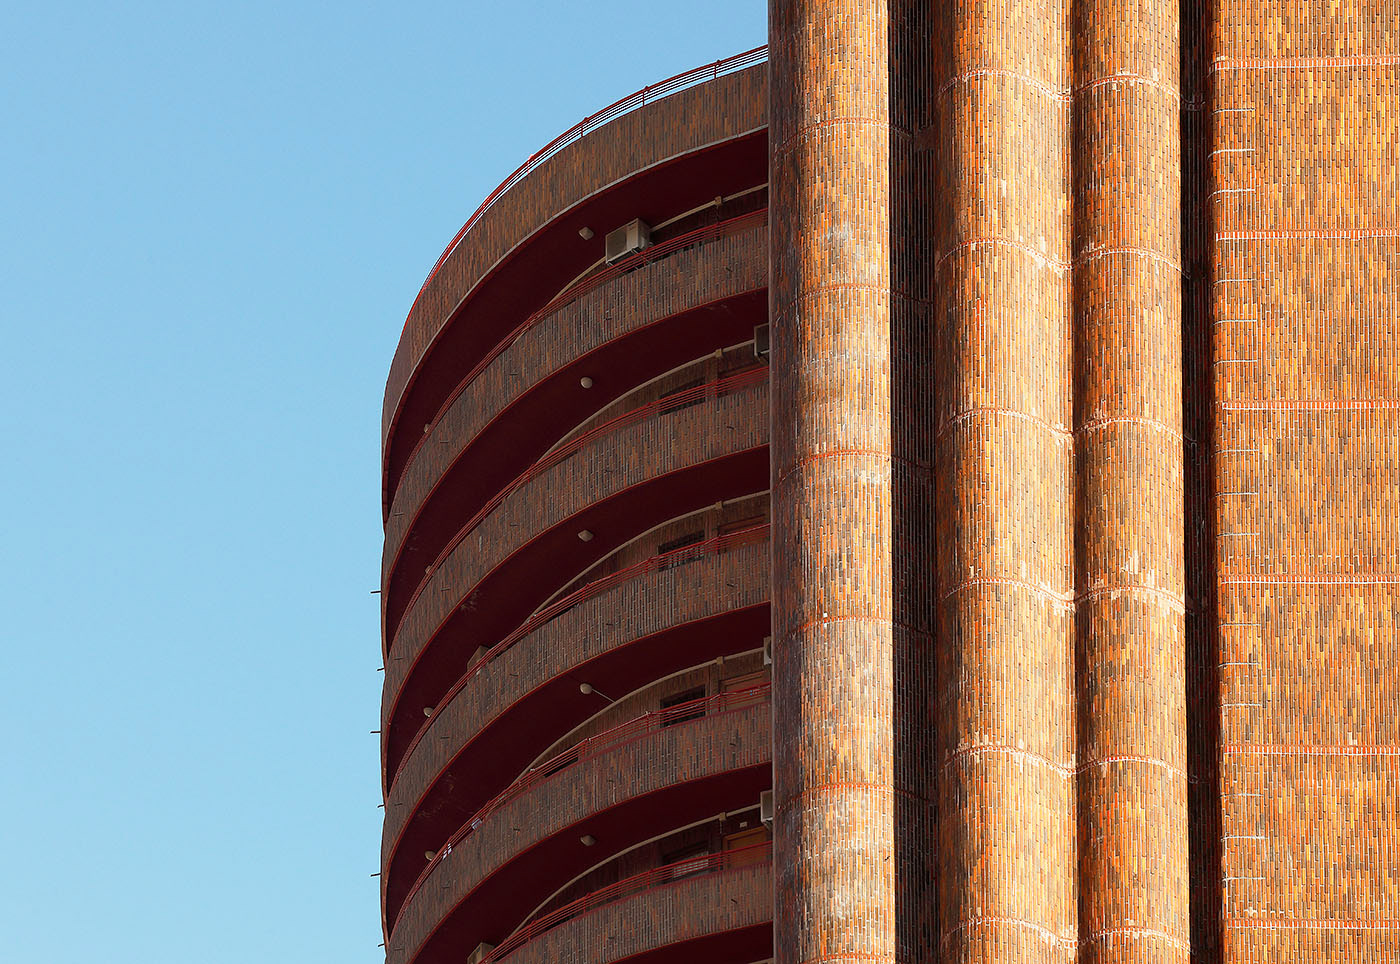 architecture,Photography ,Brutalism,Minimalism,tourism,colour,shapes,structures,facades,graphical